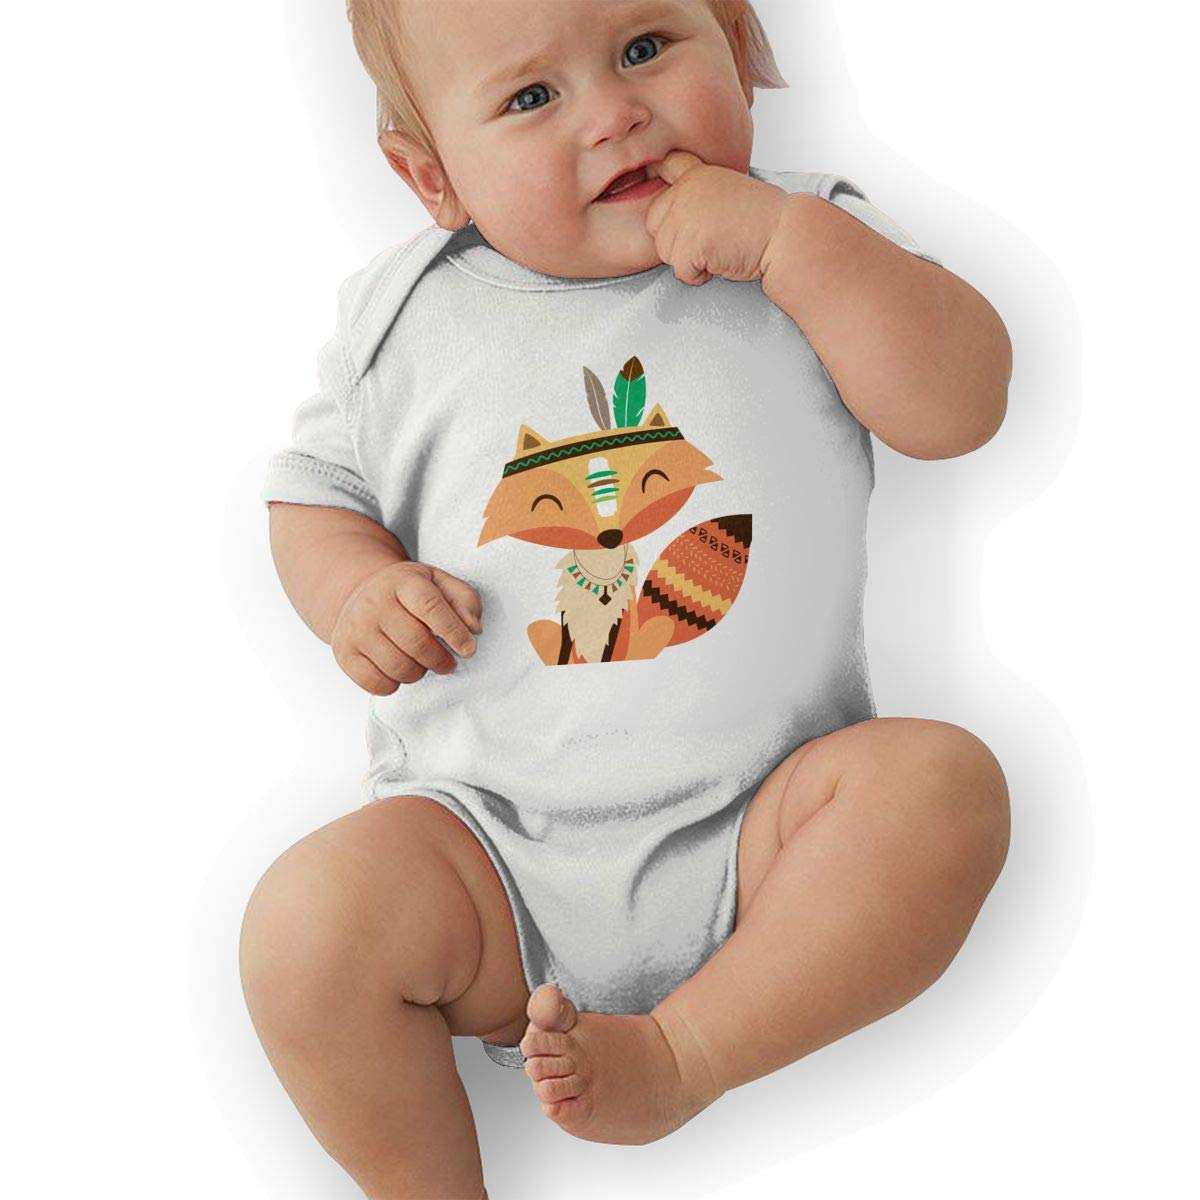 Toddler Baby Boys Bodysuit Short-Sleeve Onesie Native Fox Smile Print Outfit Spring Pajamas